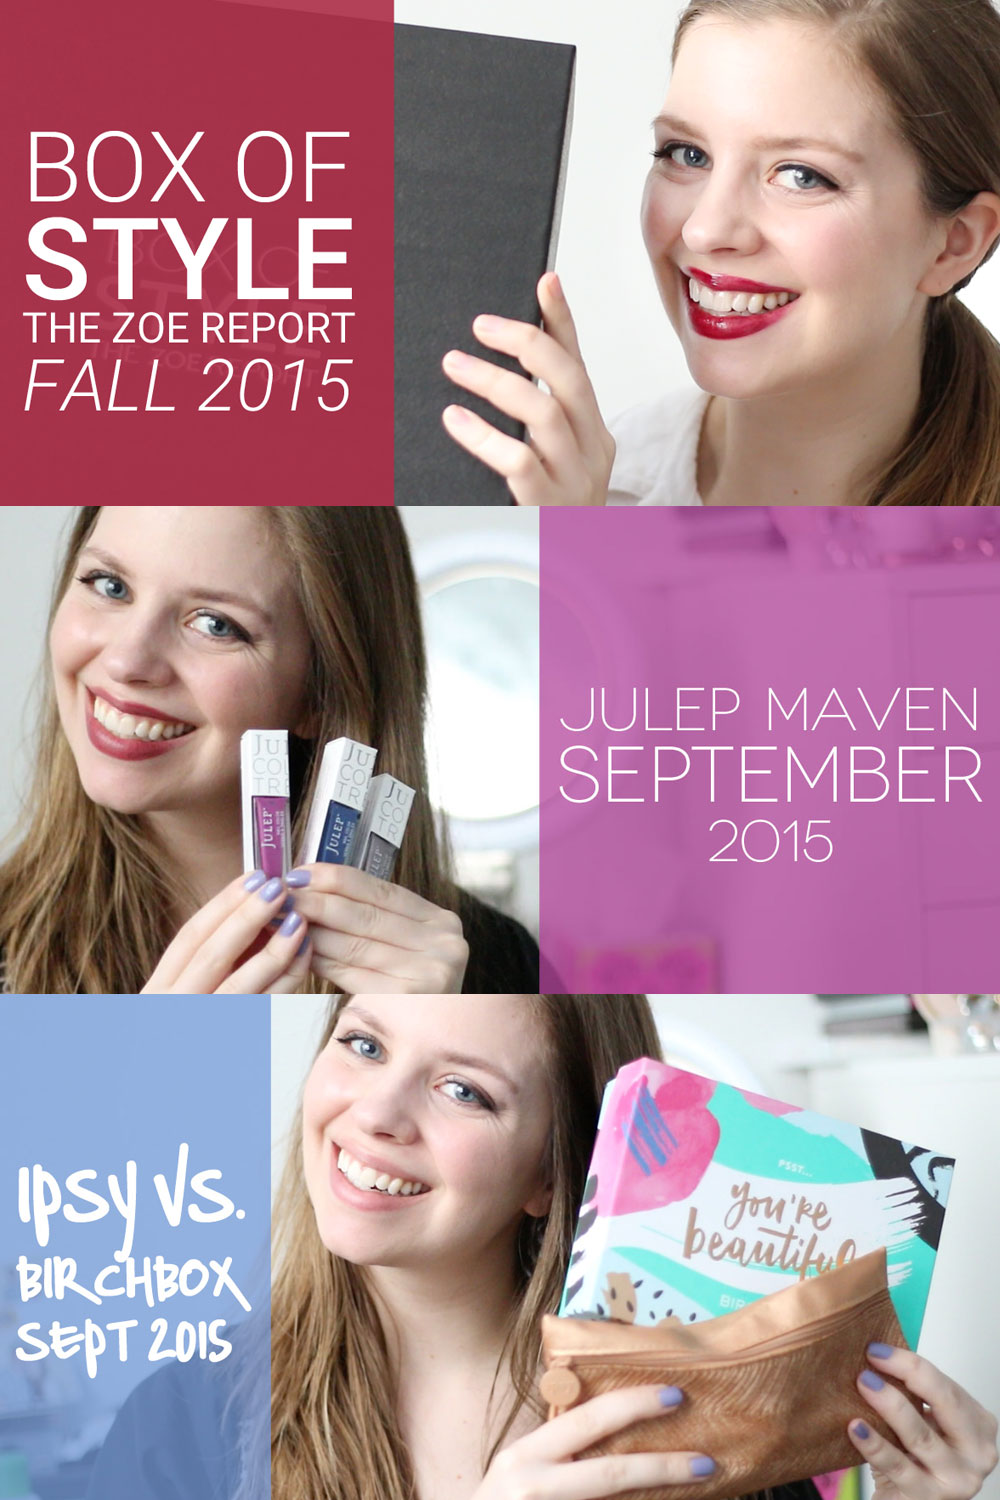 Subscription Boxes Lately: The Zoe Report Box of Style Fall 2015, Ipsy vs. Birchbox, and Julep Maven September // hellorigby seattle style blog